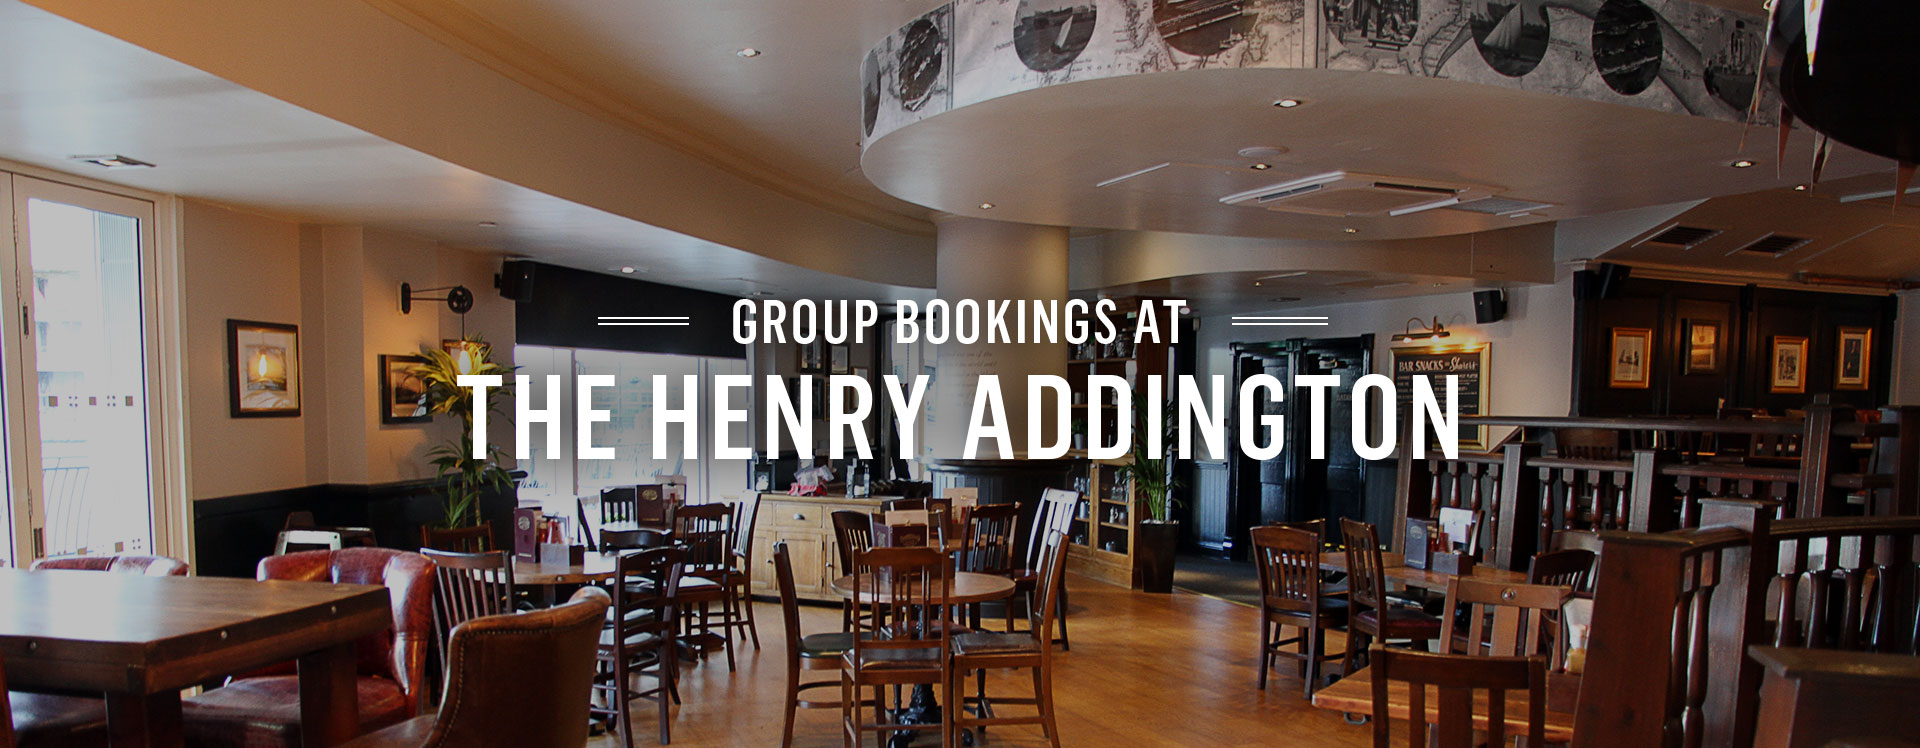 Group Bookings at The Henry Addington